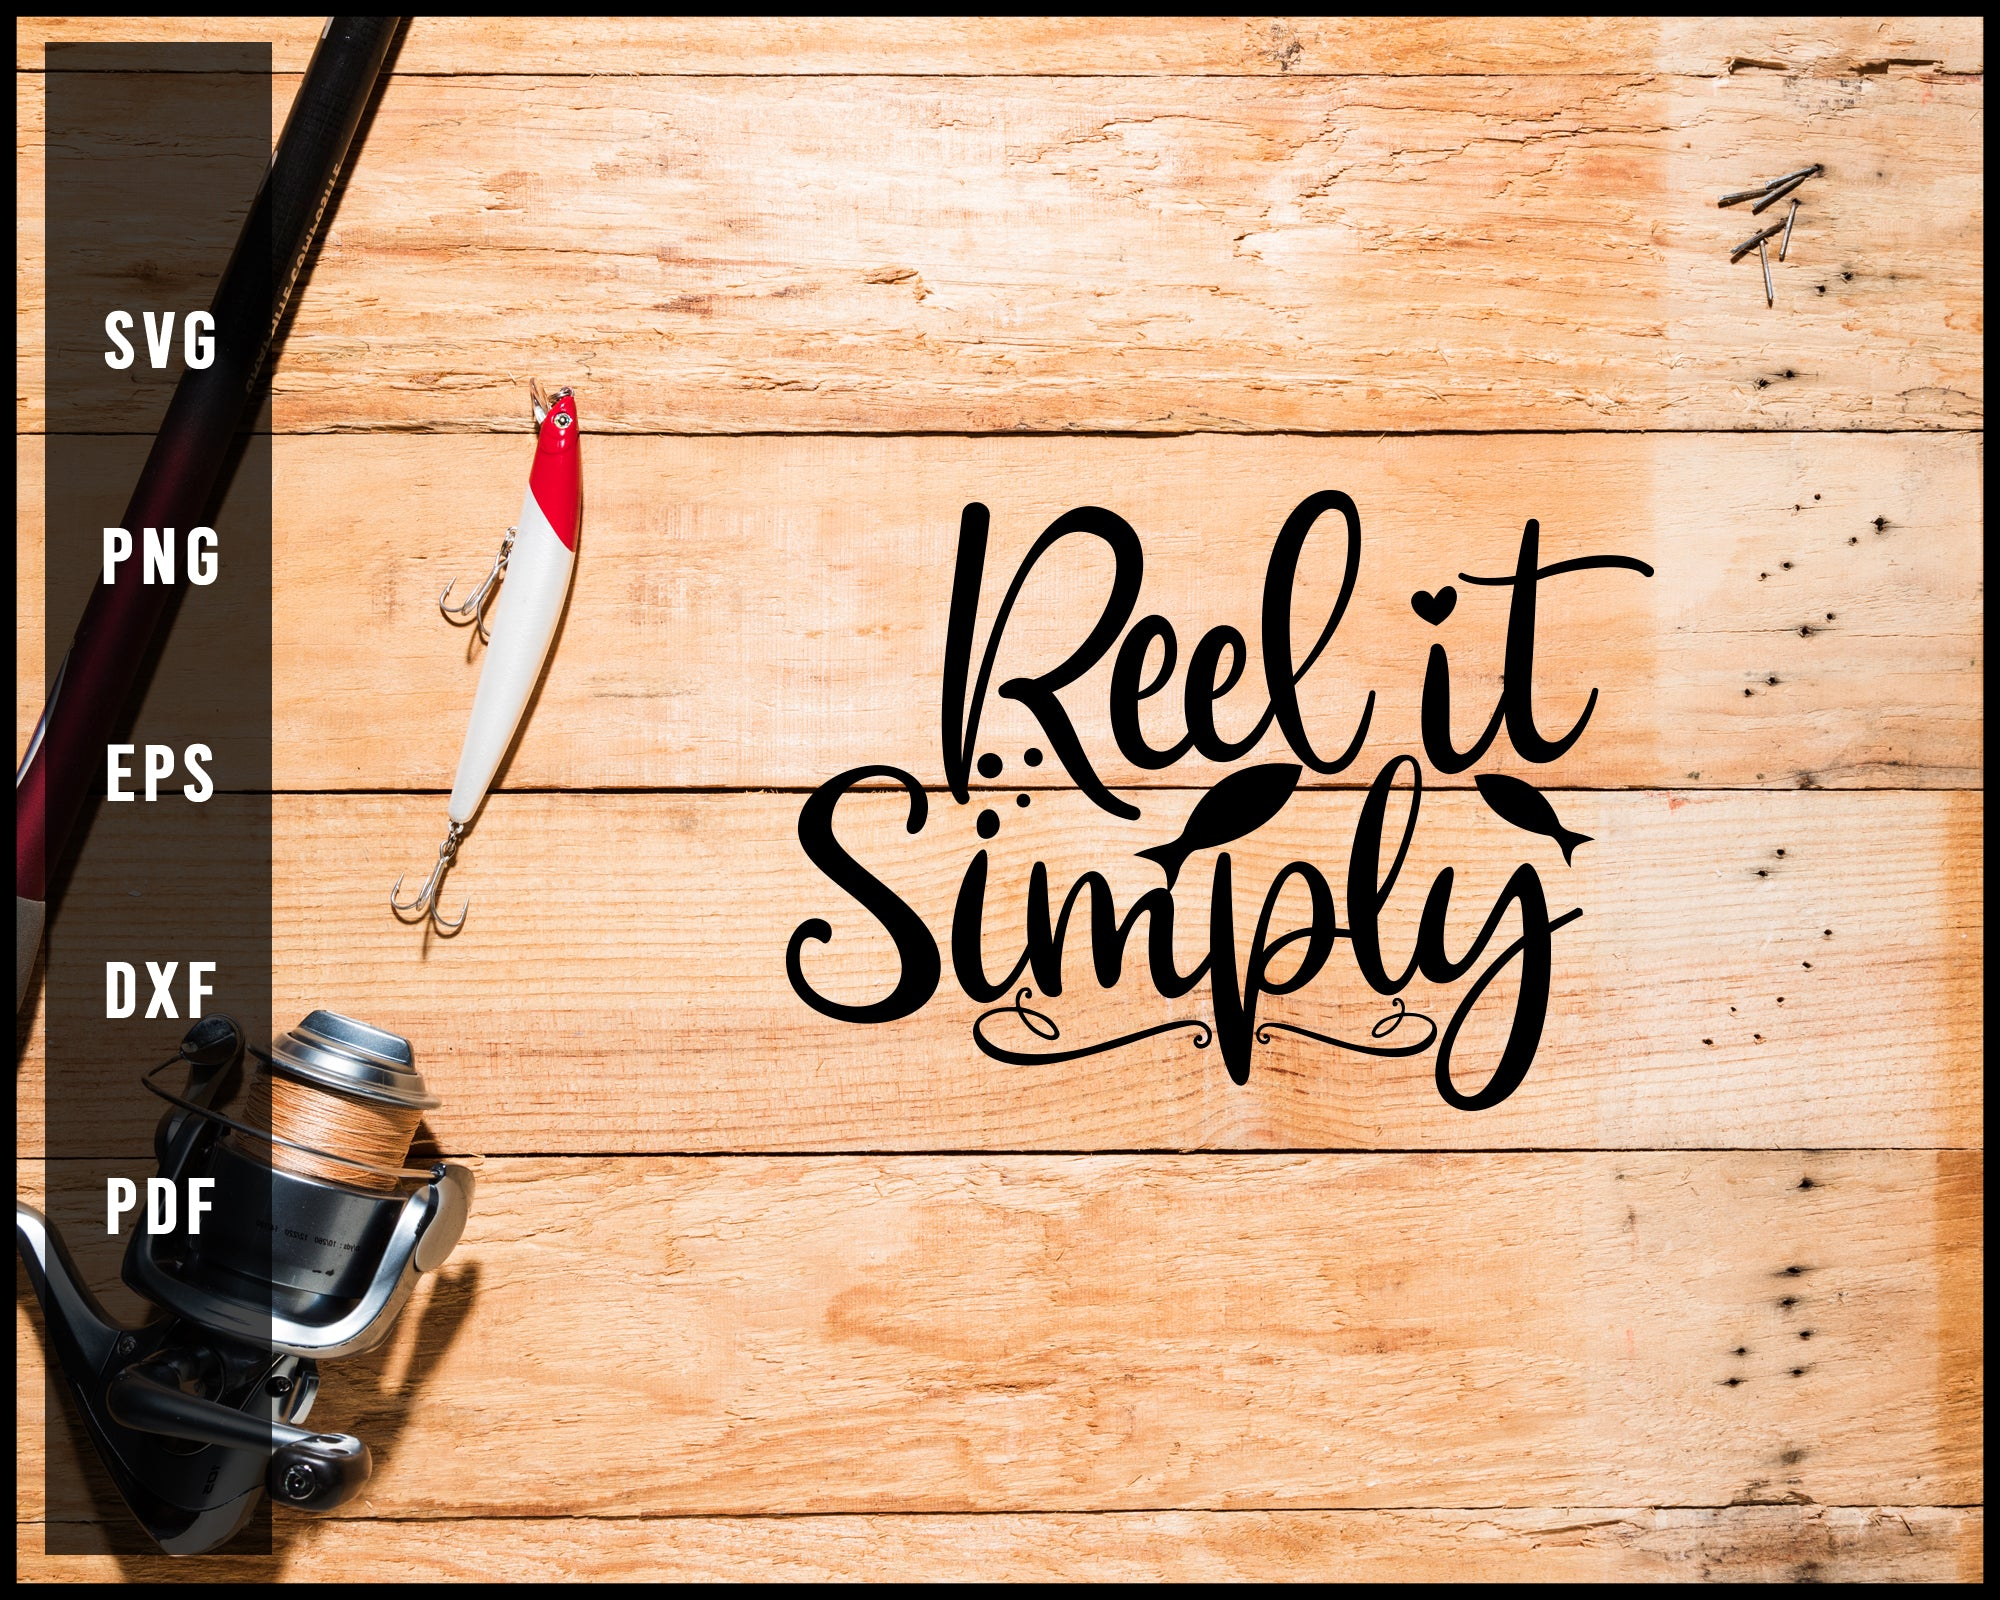 Reel It Simply Fishing Cut File For Cricut Silhouette svg png Printable Files